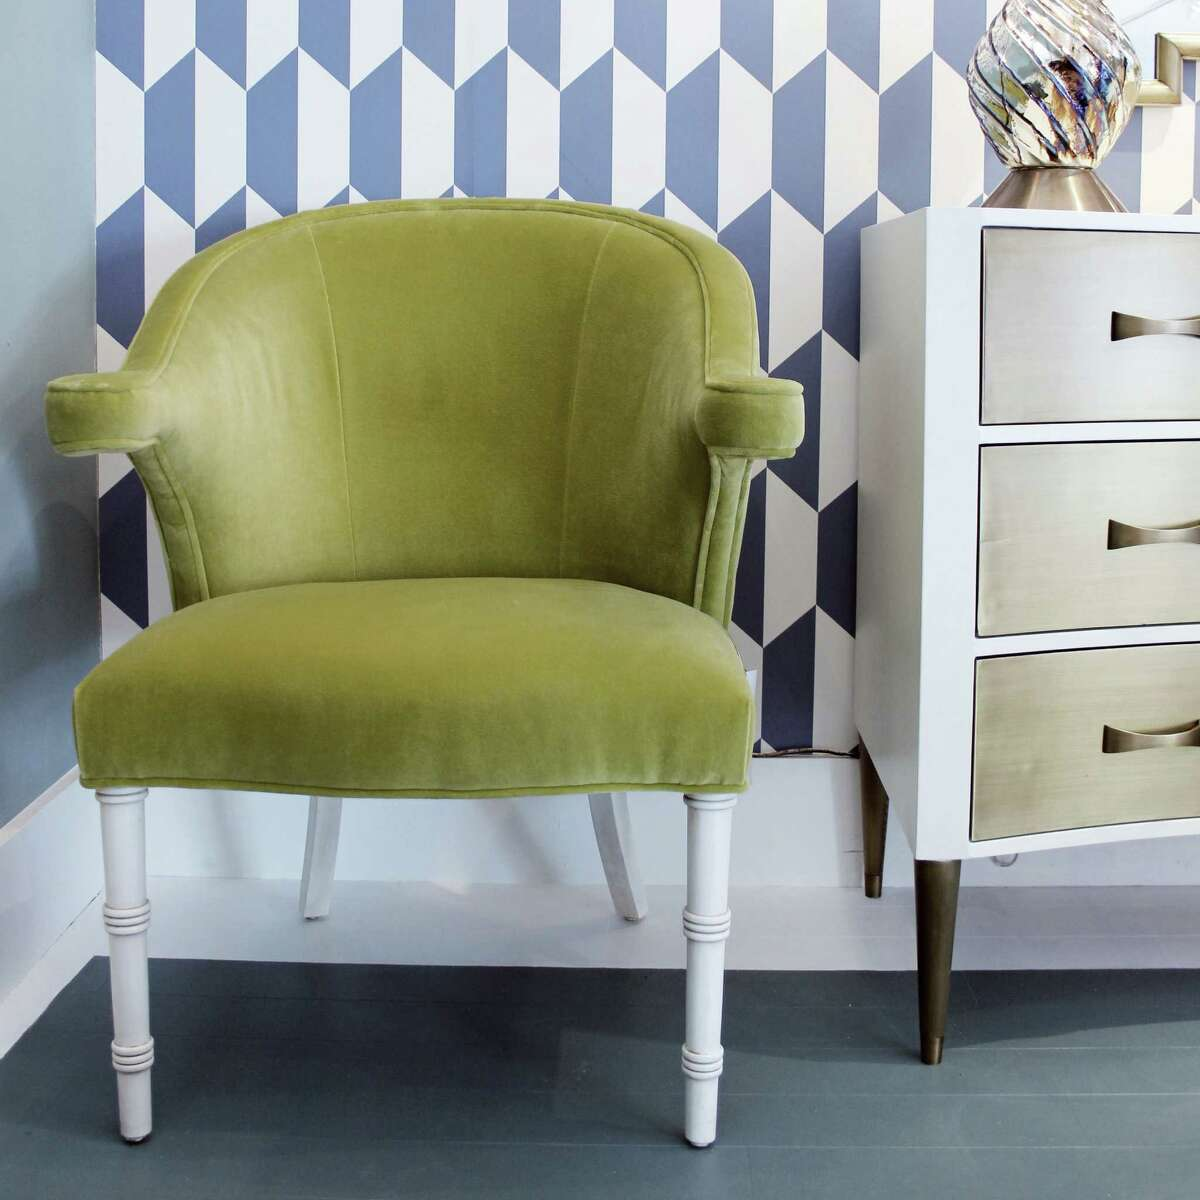 Julian Chichester made its Virginia Chair in a bold and brilliant wasabi velvet.